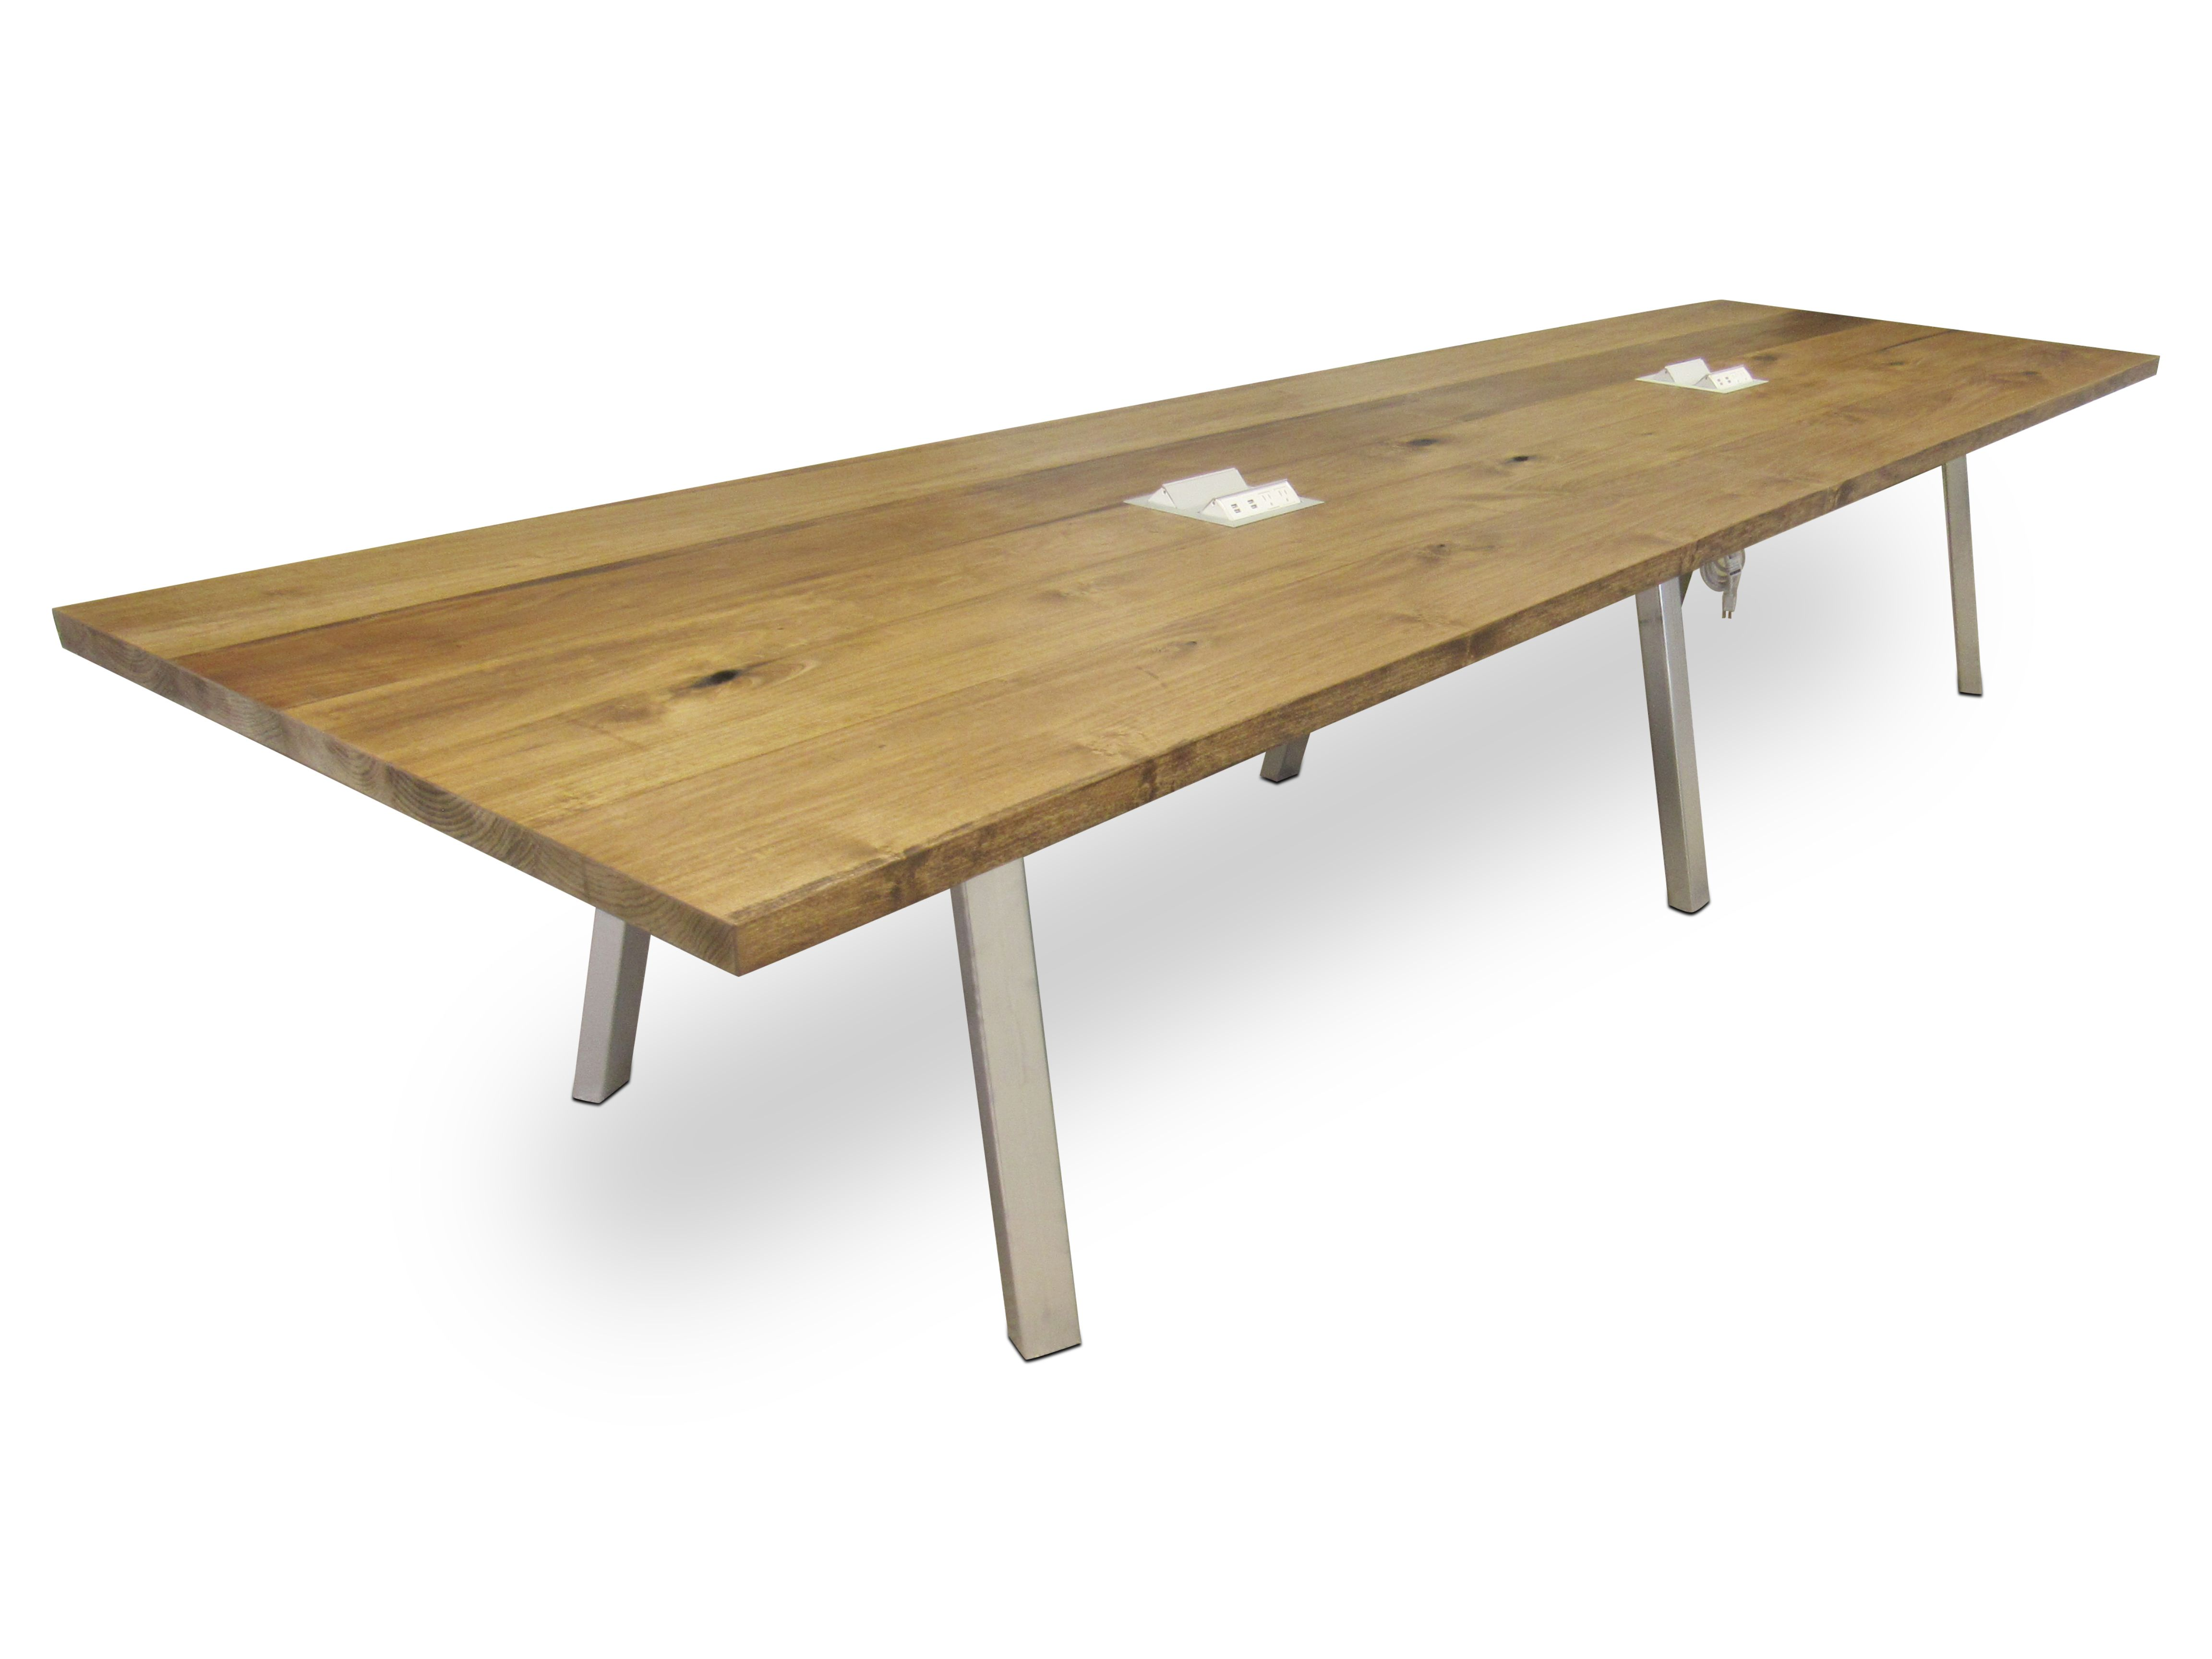 Hand Made Chicago Industrial Modern Conference Table by The Urban